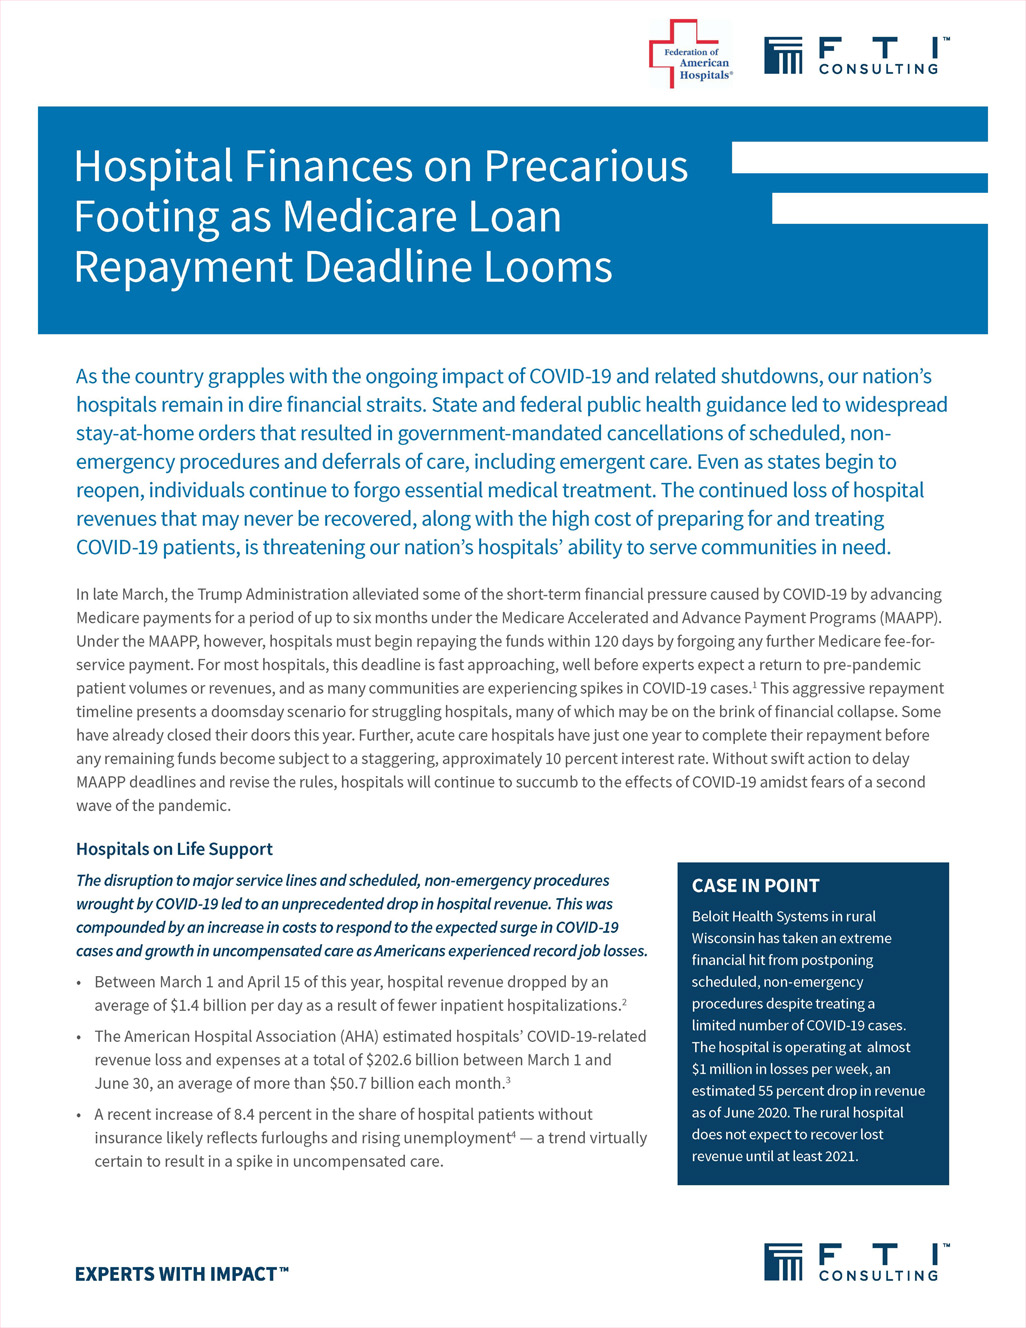 Medicare Accelerated and Advance Payments for COVID-19 Revenue Loss: Time to Repay?